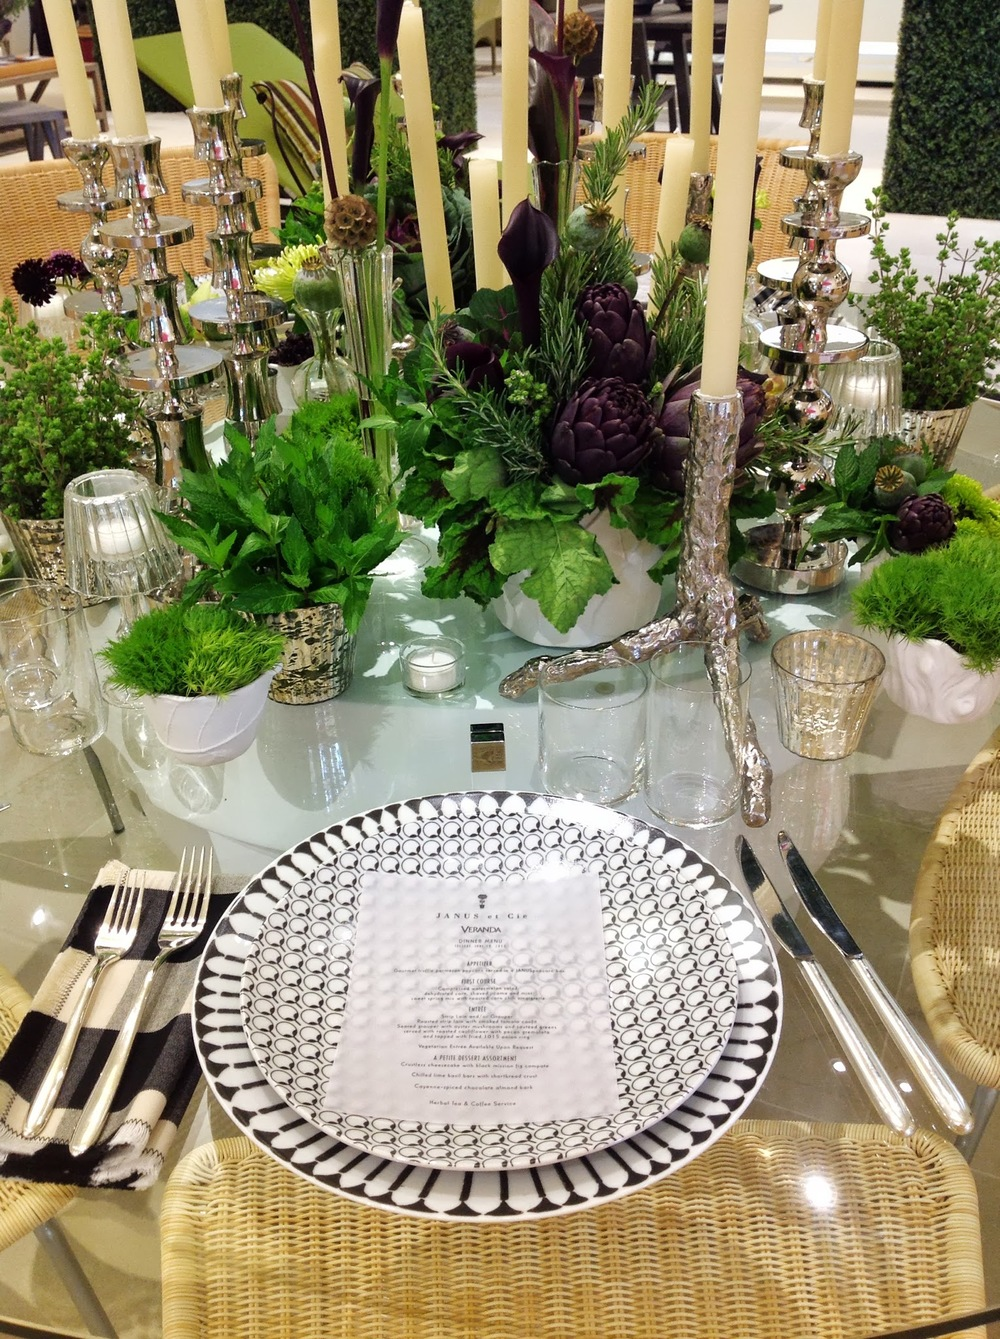 Launch Party- JANUS et Cie Modern Table Arrangement by Maxit Flower Design in Houston, Texas